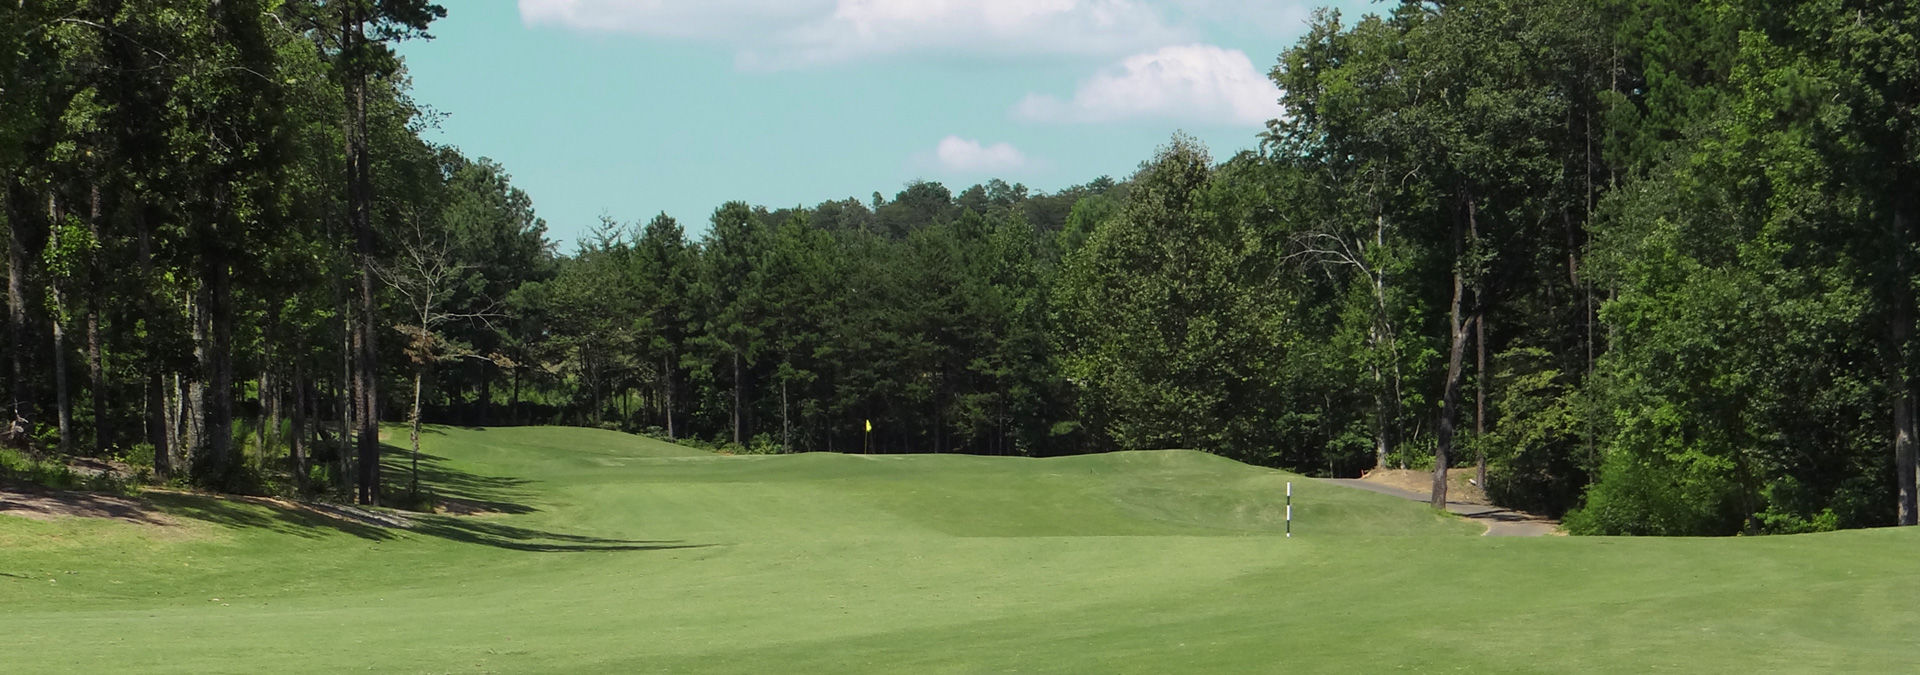 Canton golf club cover picture